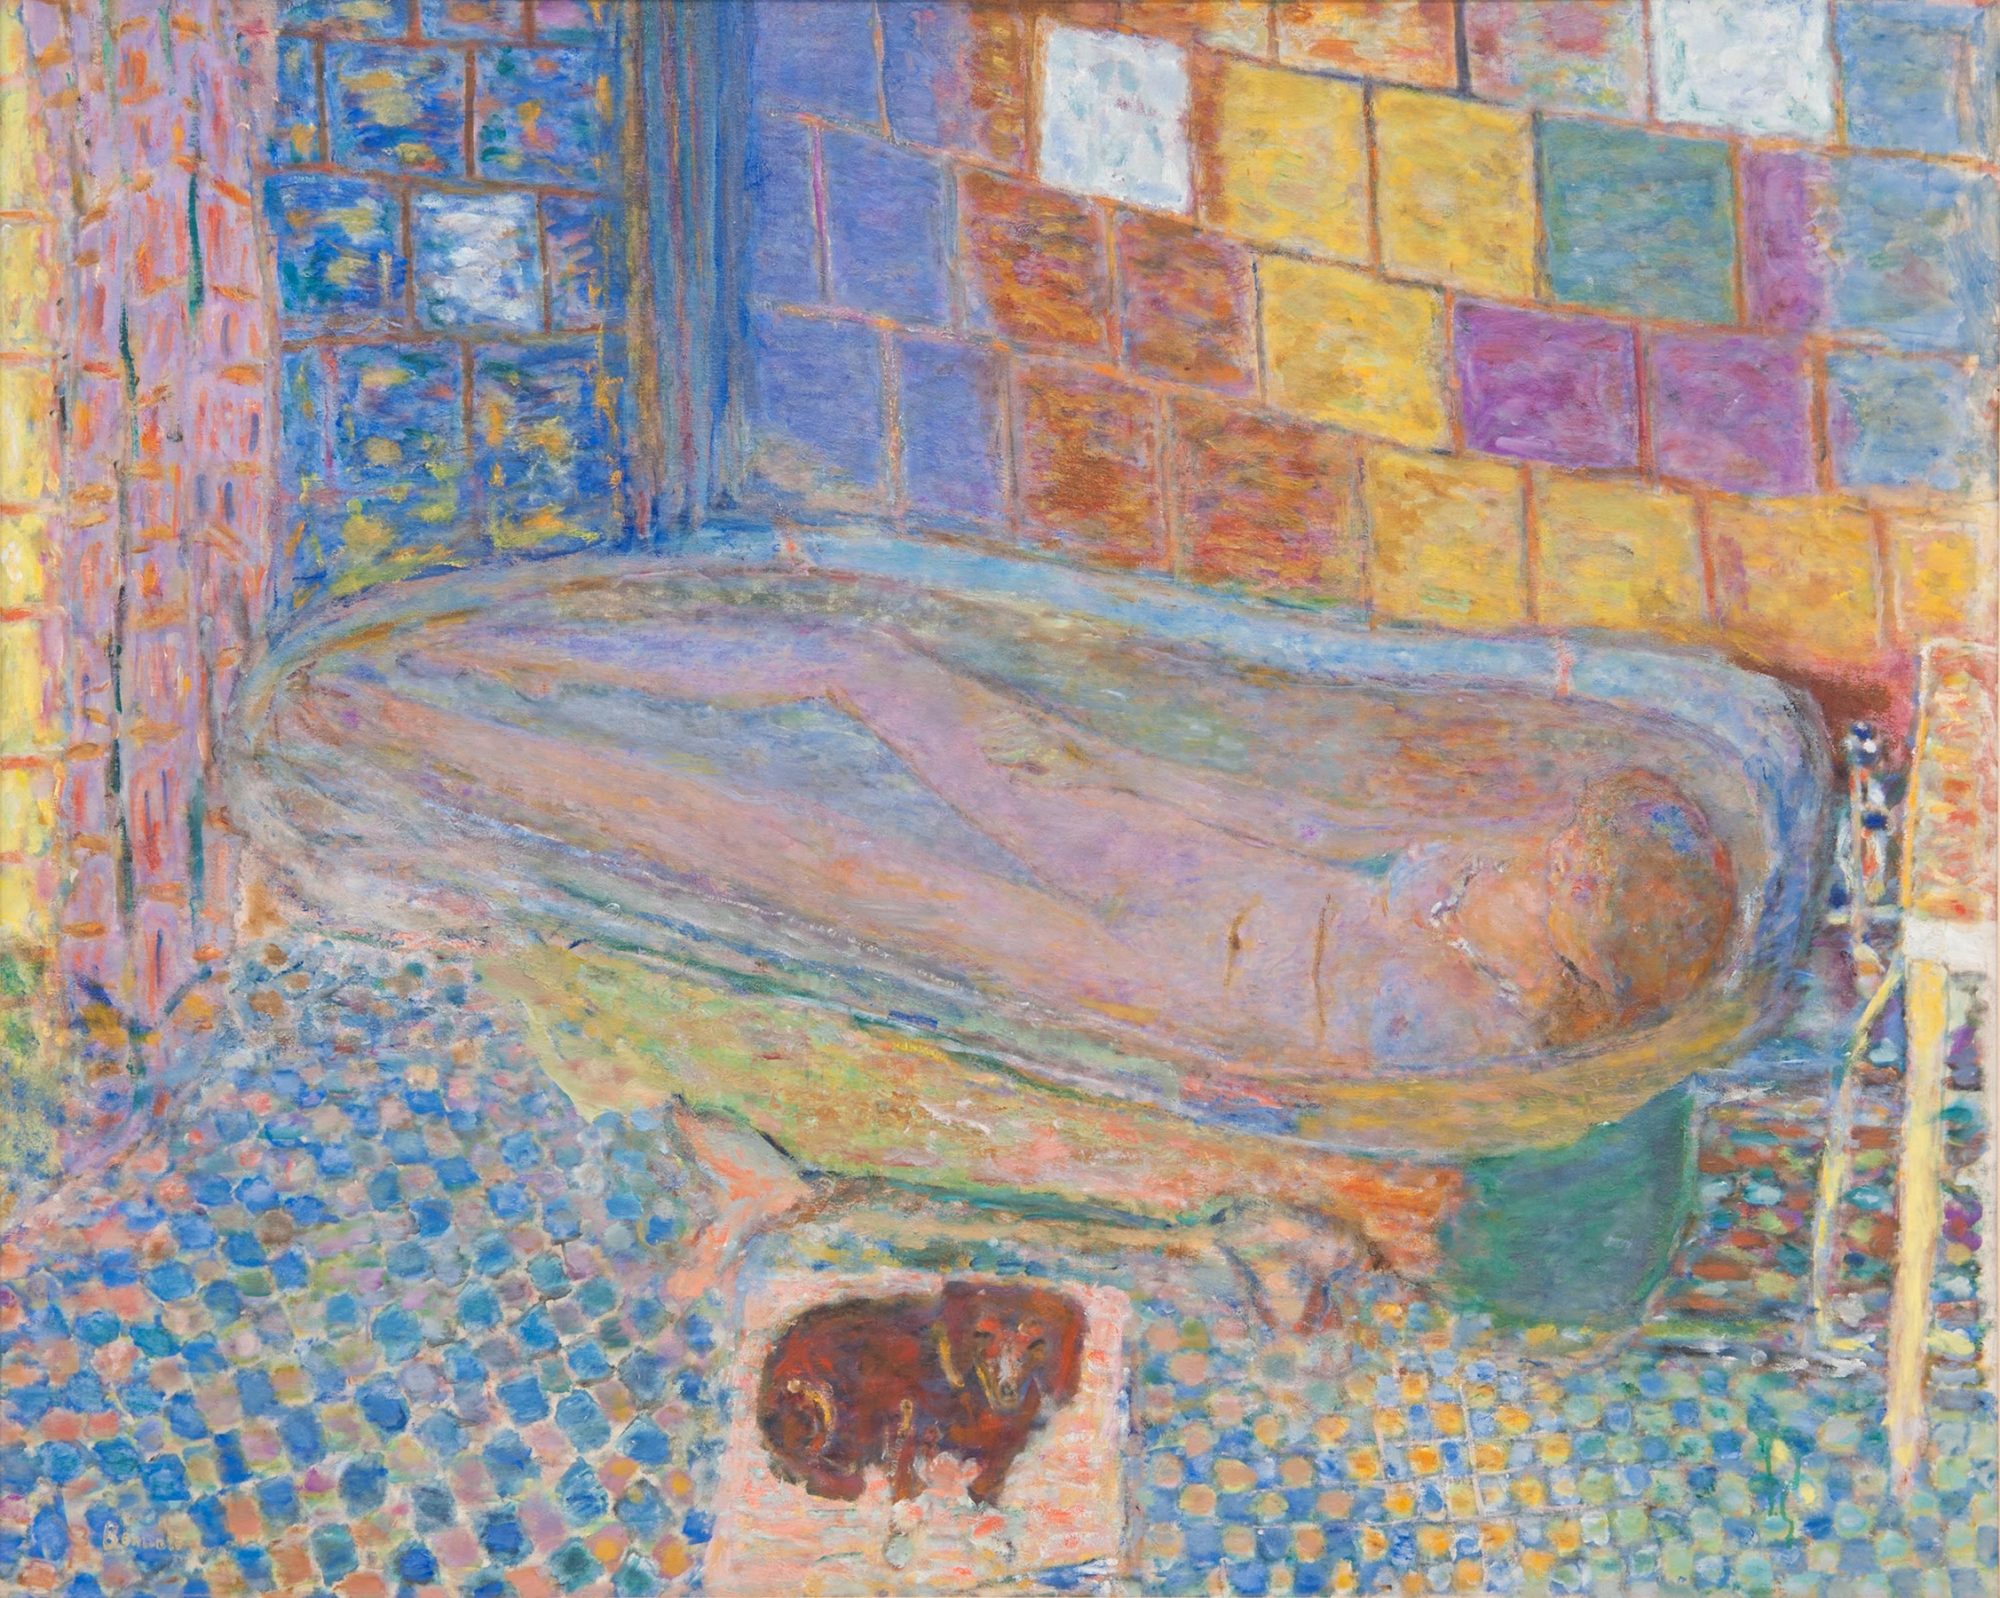 Reference Material: Nude in Bathtub